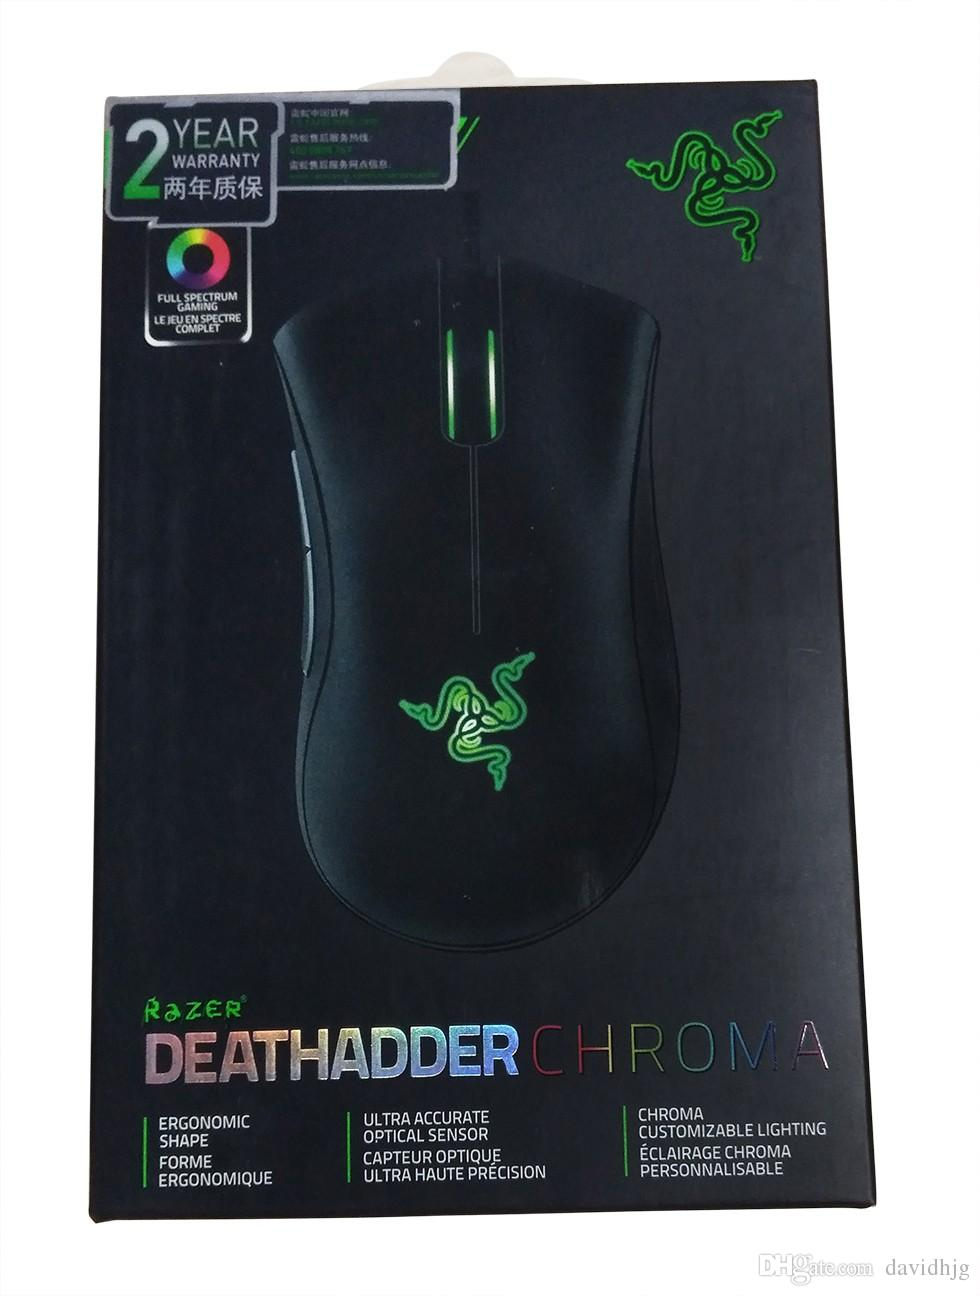 Razer Deathadder Chroma The World s Best Gaming Mouse 10000dpi optical  sensor Up to 300 inches per second/50g acceleration